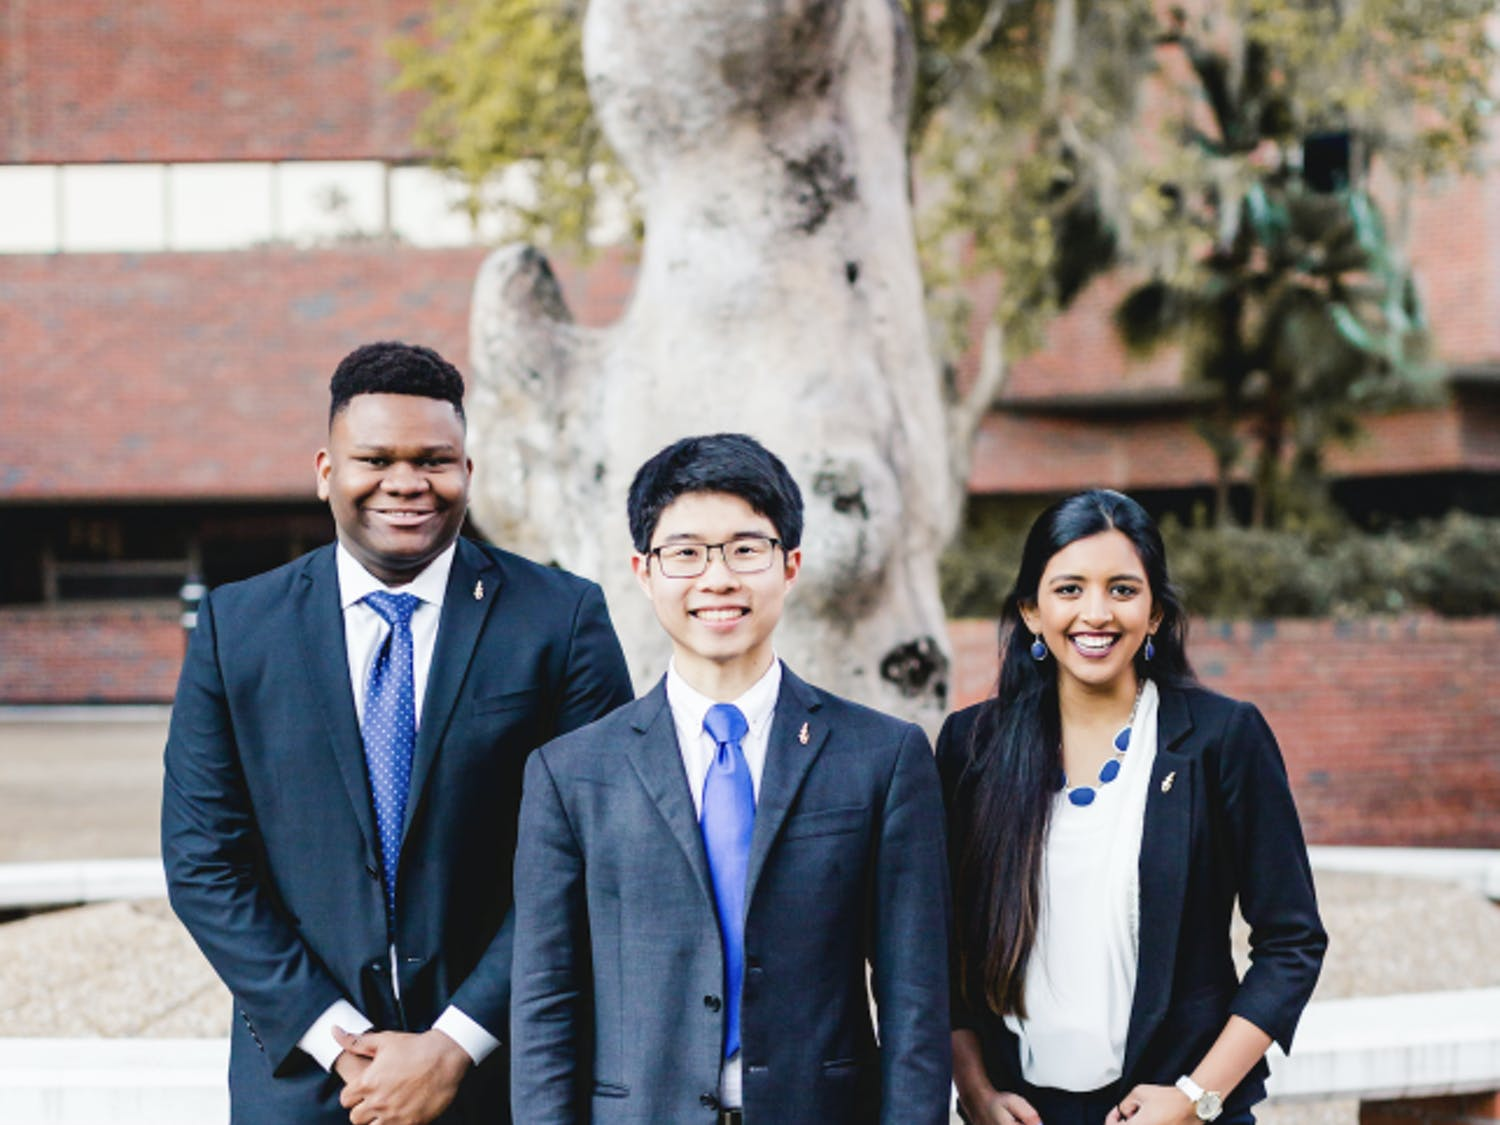 The UF Inspire Party announced its executive ticket with Zachariah Chou, 21, for Student Body president (center); Gouthami Gadamsetty, 20, for Student Body vice president (right); and Mackintosh Joachim, 19, for Student Body treasurer (left). Courtesy to The Alligator